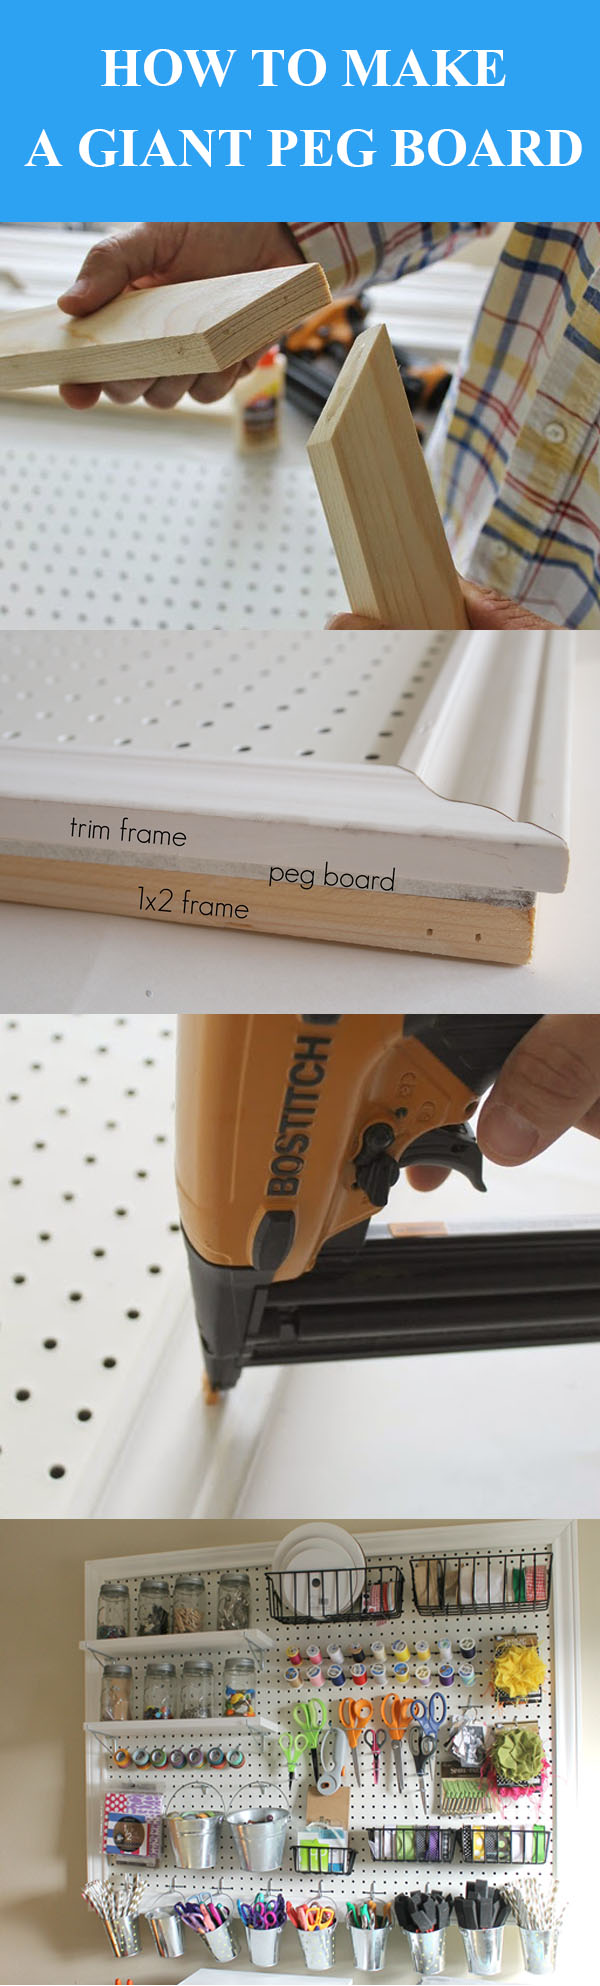 DIY Giant Peg Board